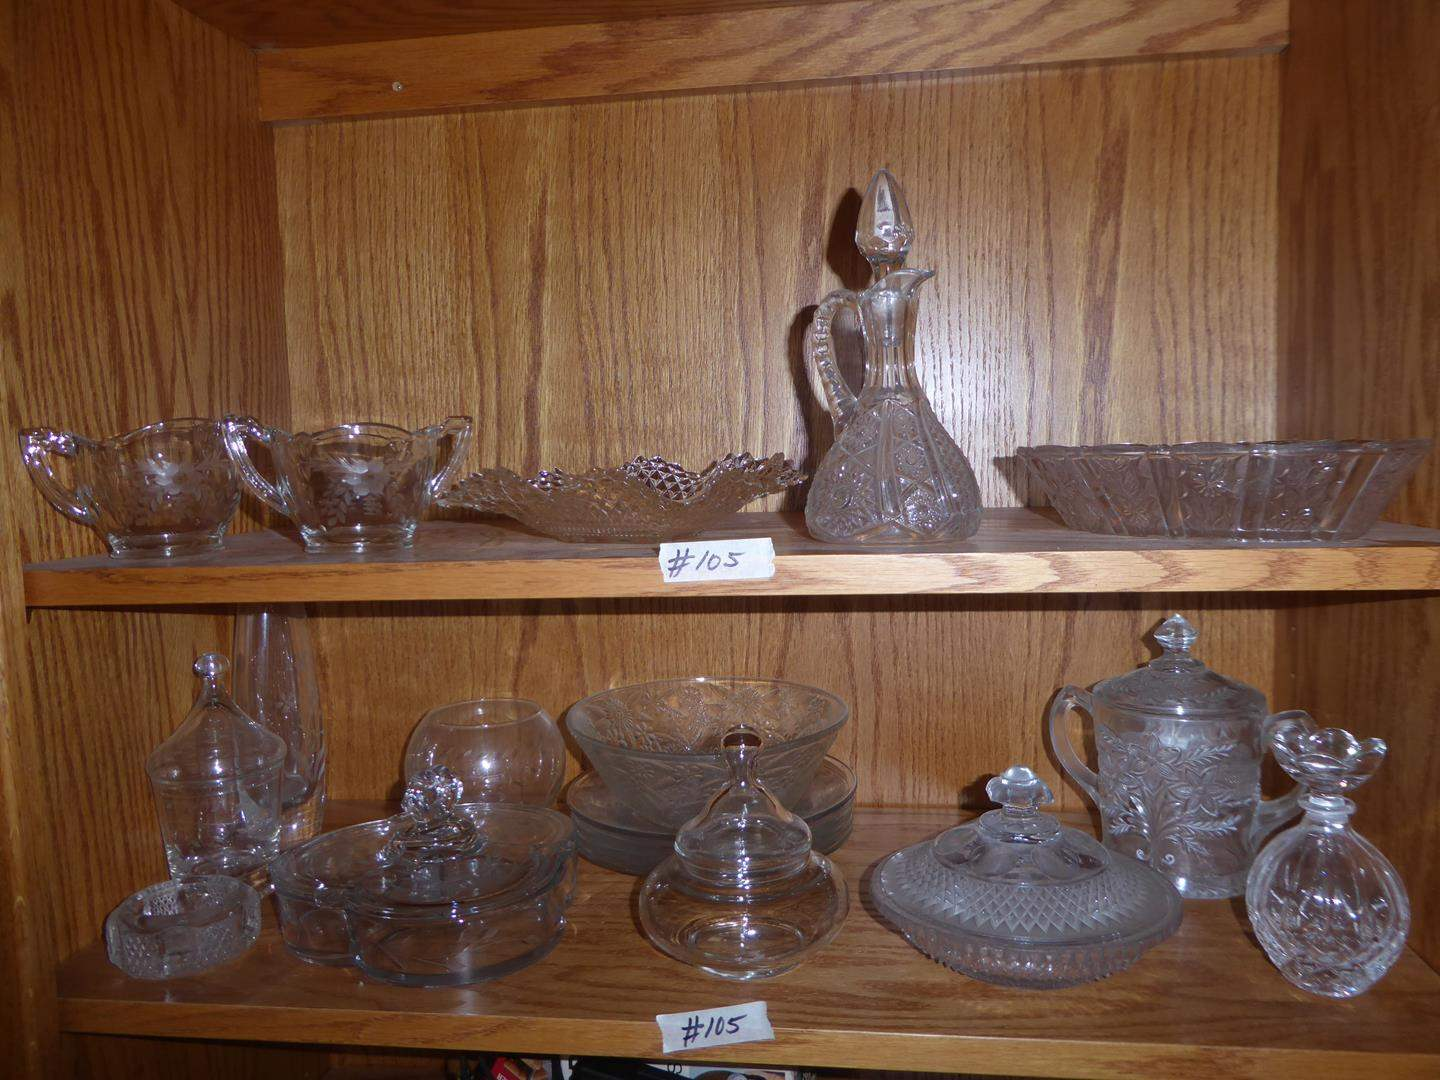 Lot # 105 - Vintage Etched Glass Creamer & Sugar, Cruet, Bowls, Candy Dishes & More (main image)